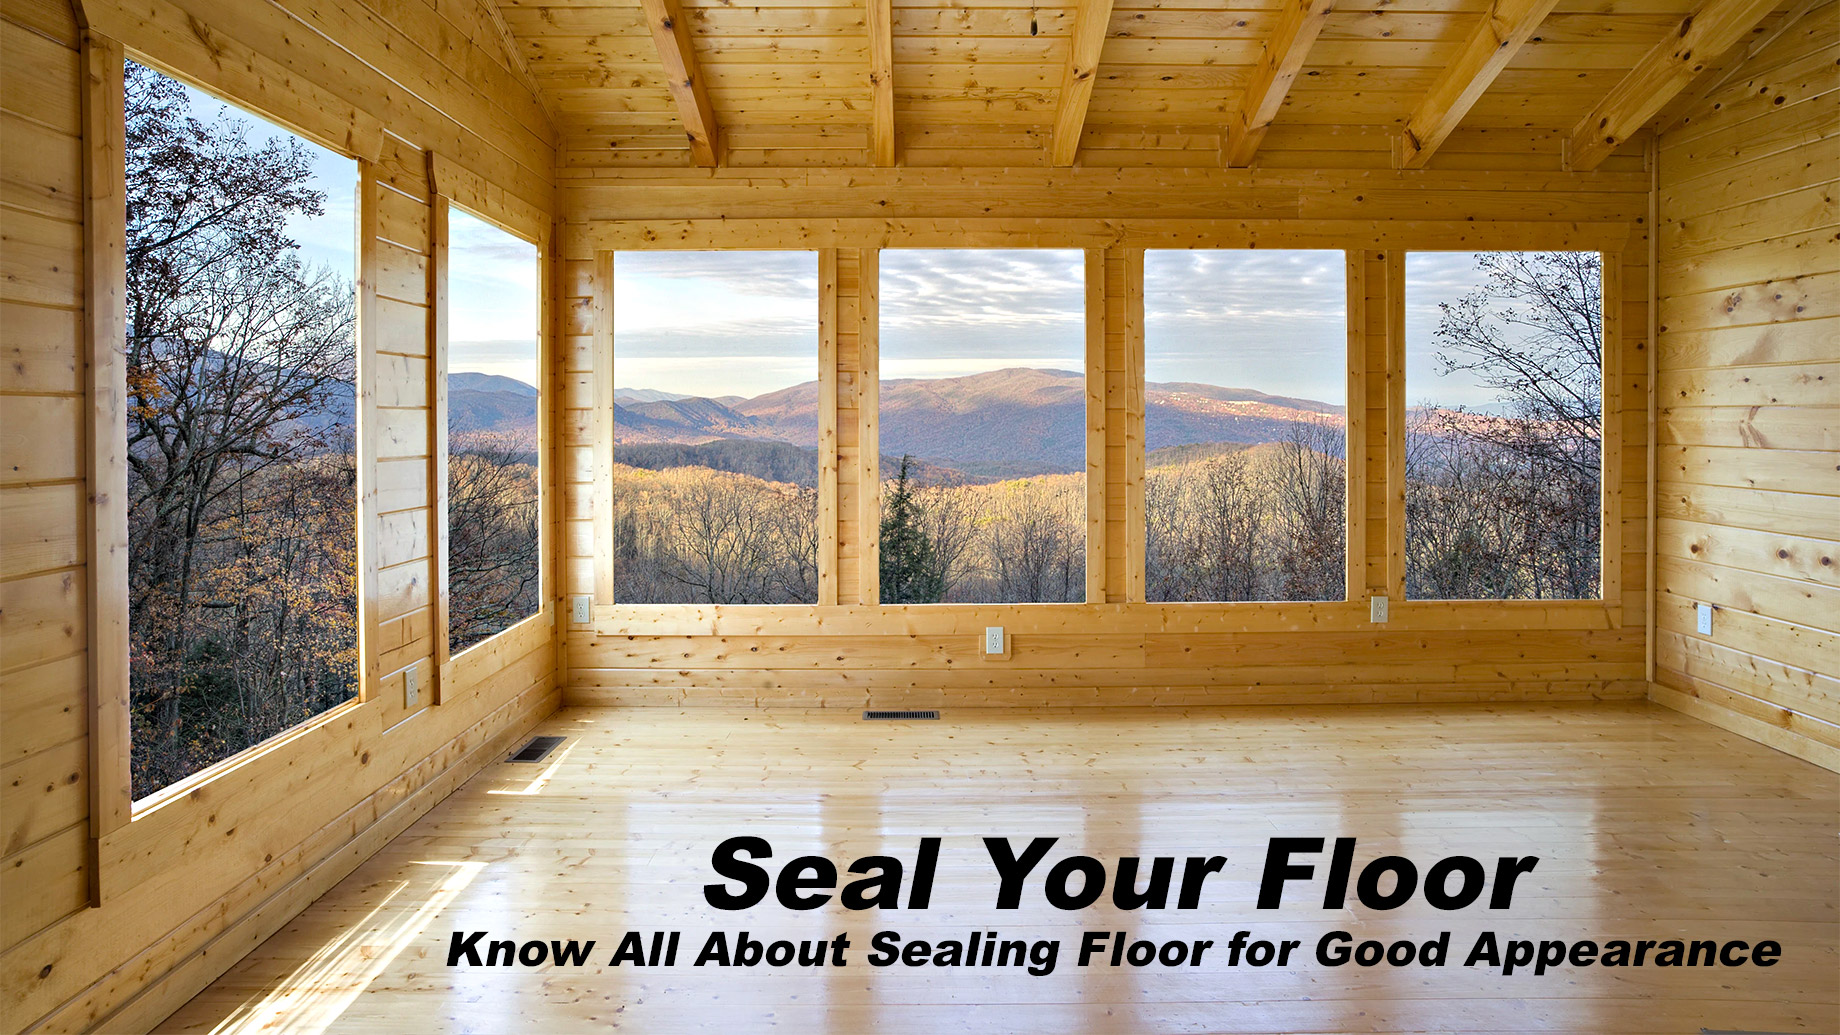 Seal Your Floor - Know All About Sealing Floor for Good Appearance